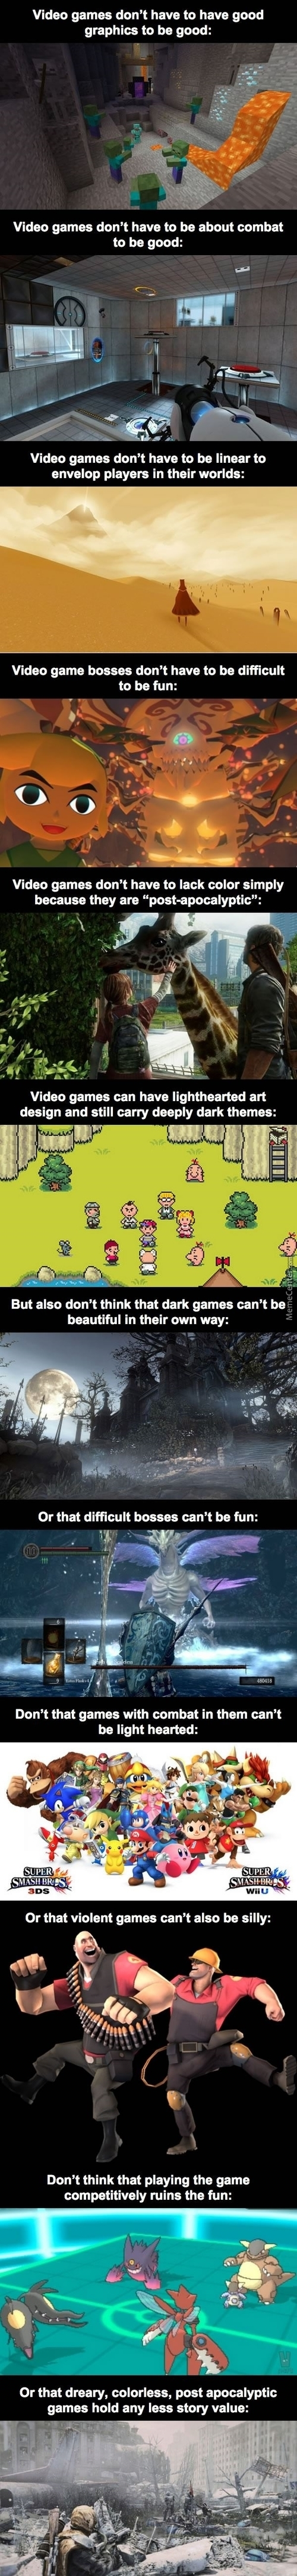 Rethink Video Games